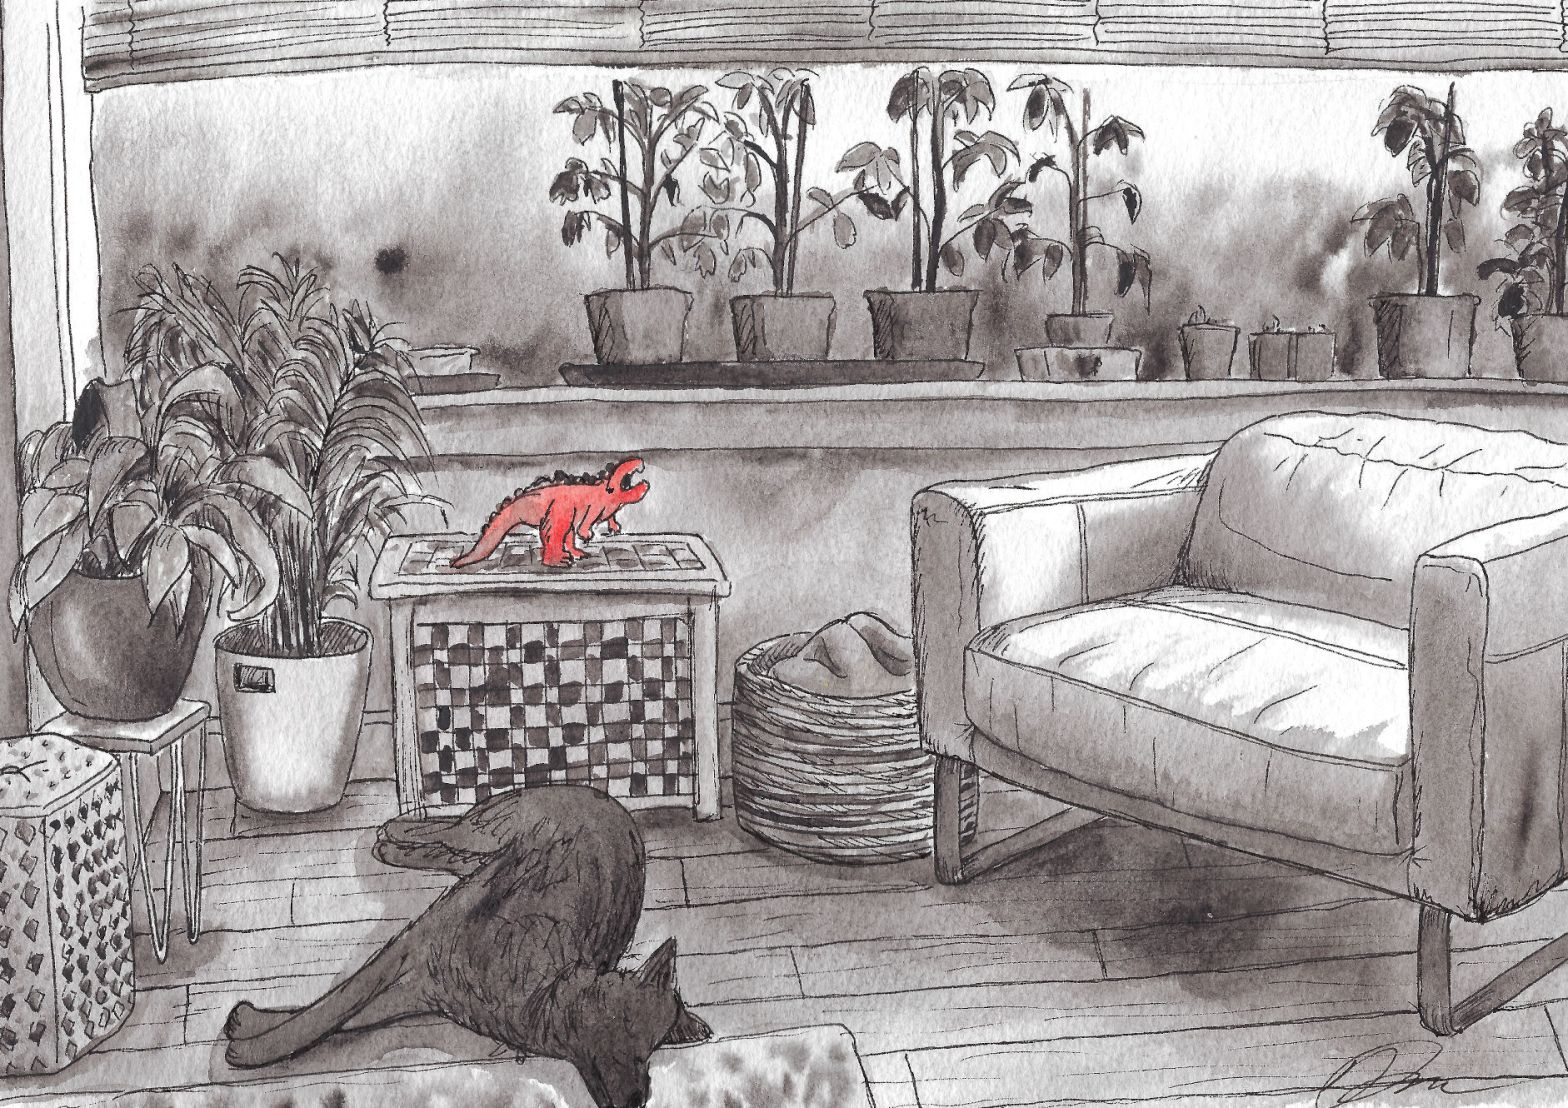 Illustration of living room with tomato plants and dog lying on the floor.